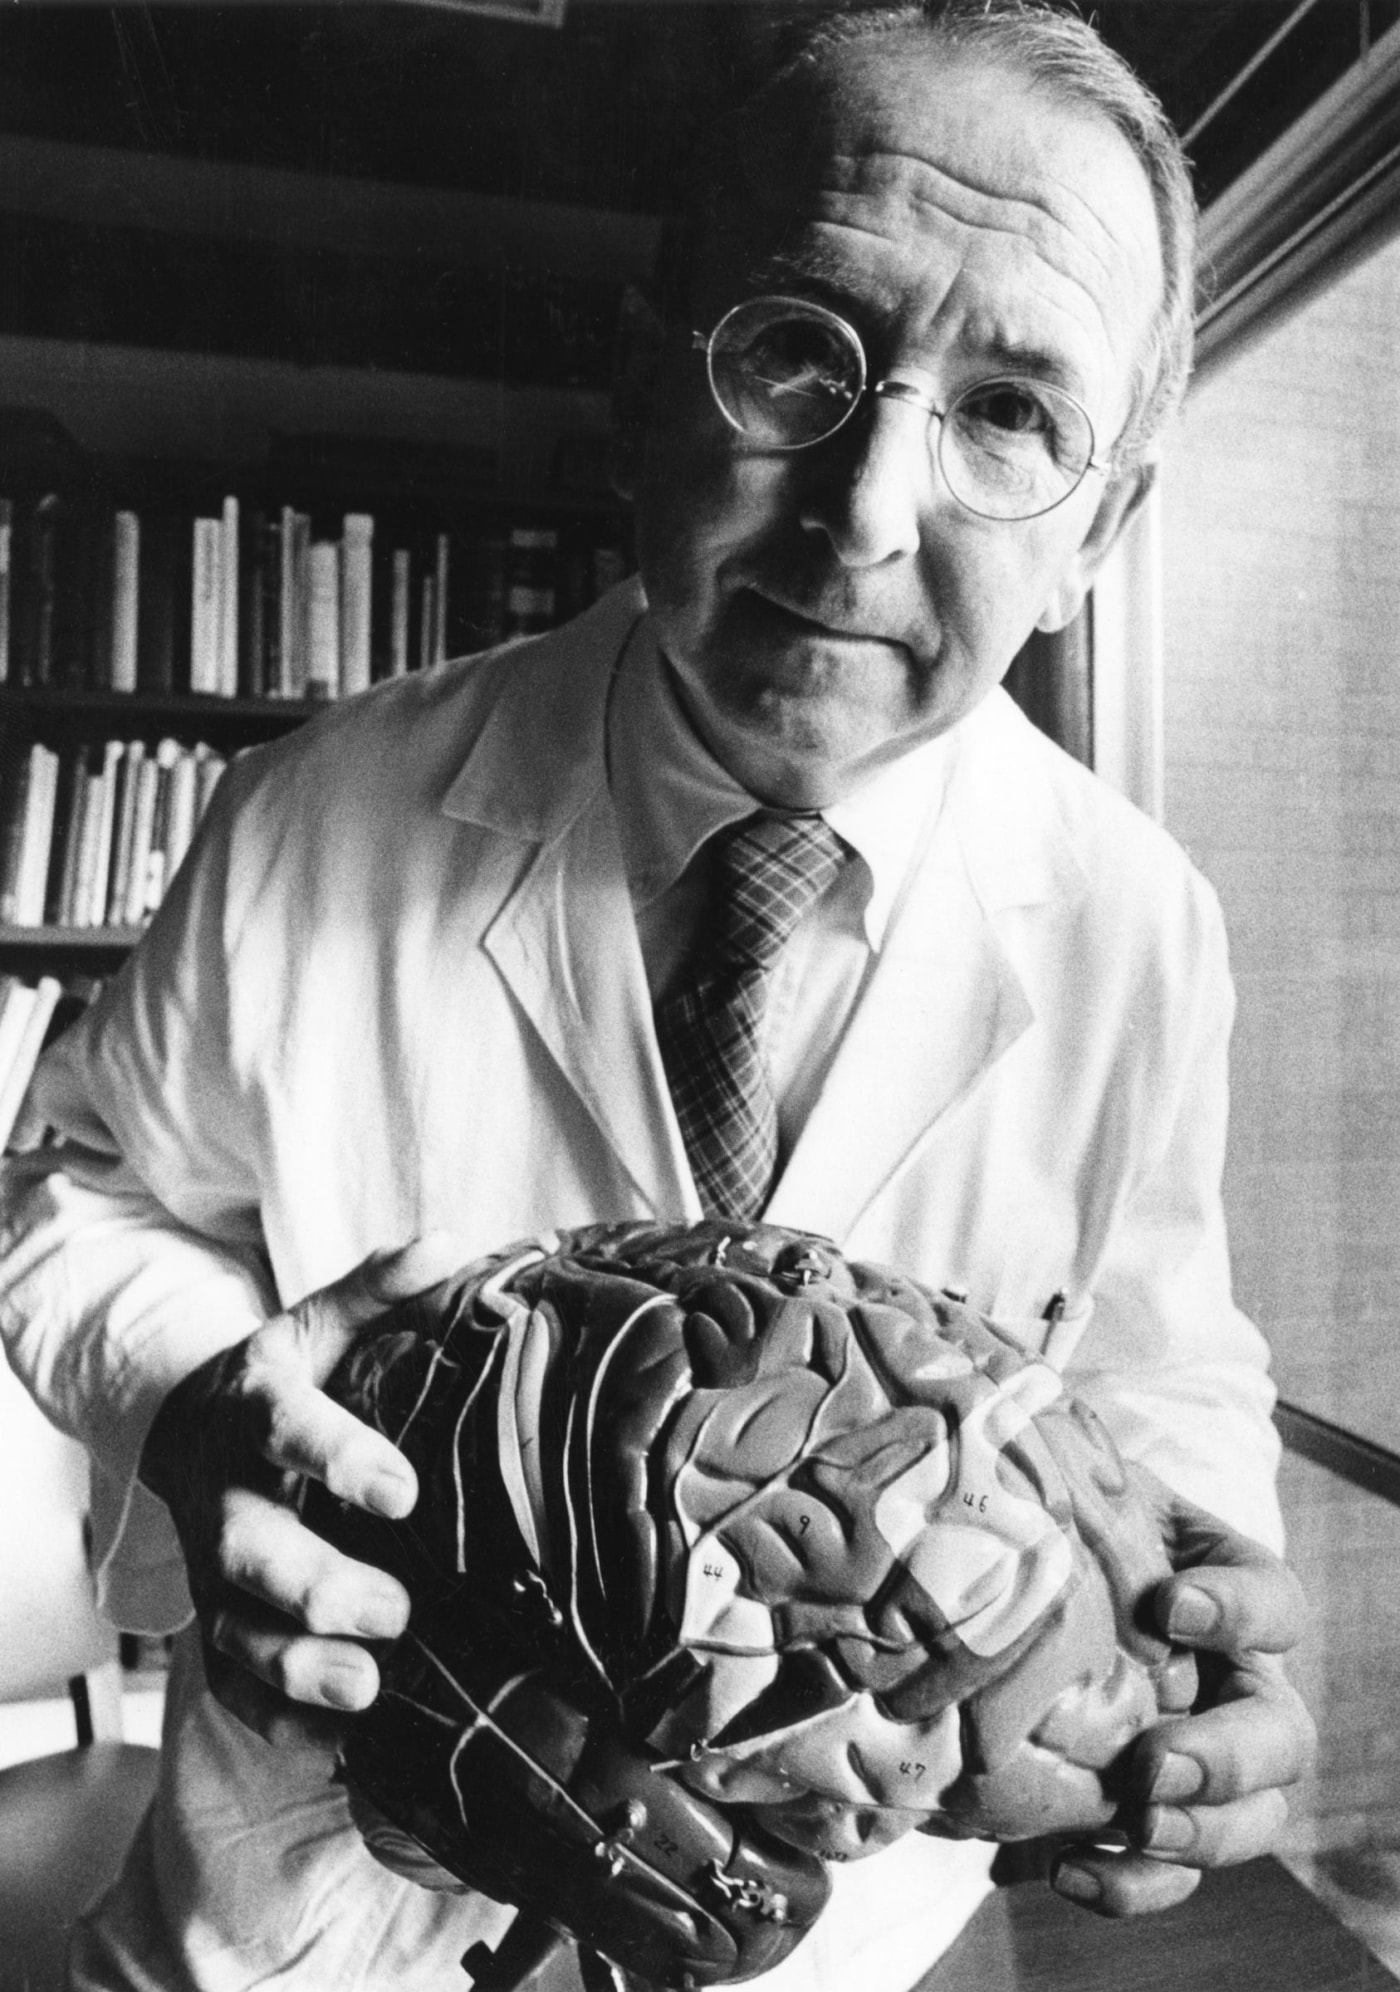 Paul MacLean believed that the neocortex was a relatively late development in the mammalian lineage, but there is now a consensus that homologues of this structure exist in simple fish, and even in insects.